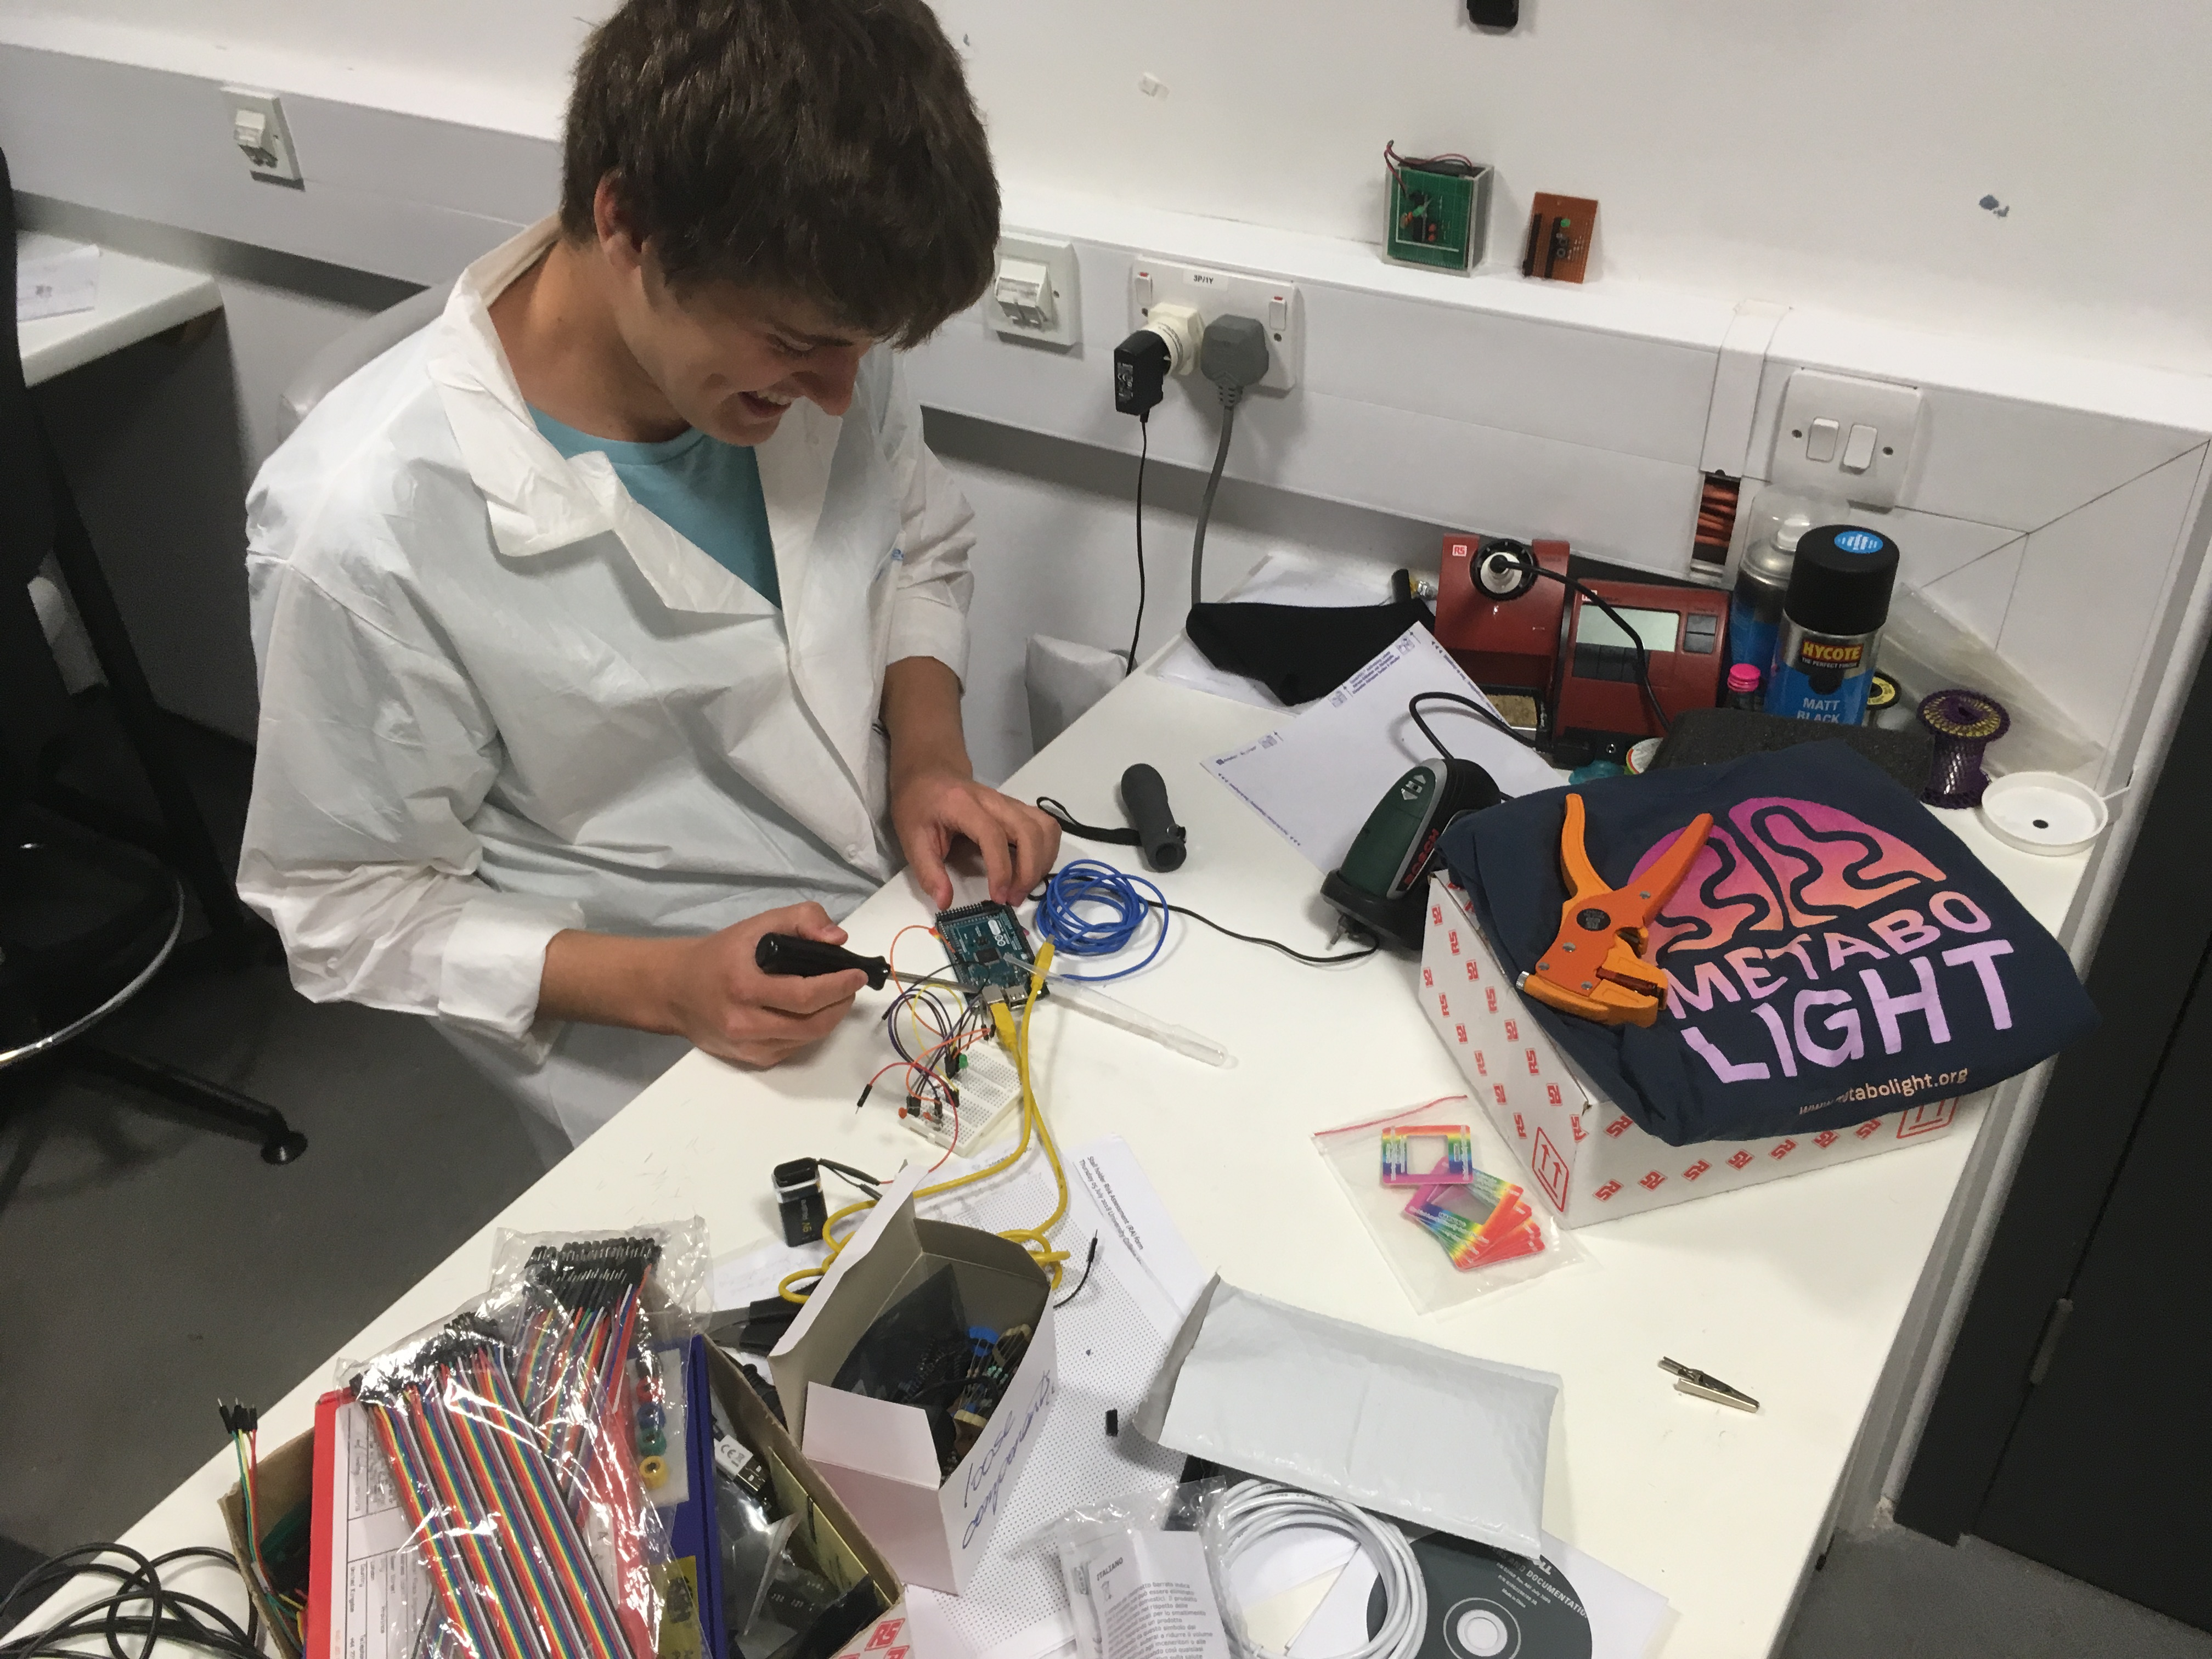 Max Burgess: An A-Level student's one week research secondment with the MetaboLight team thumbnail